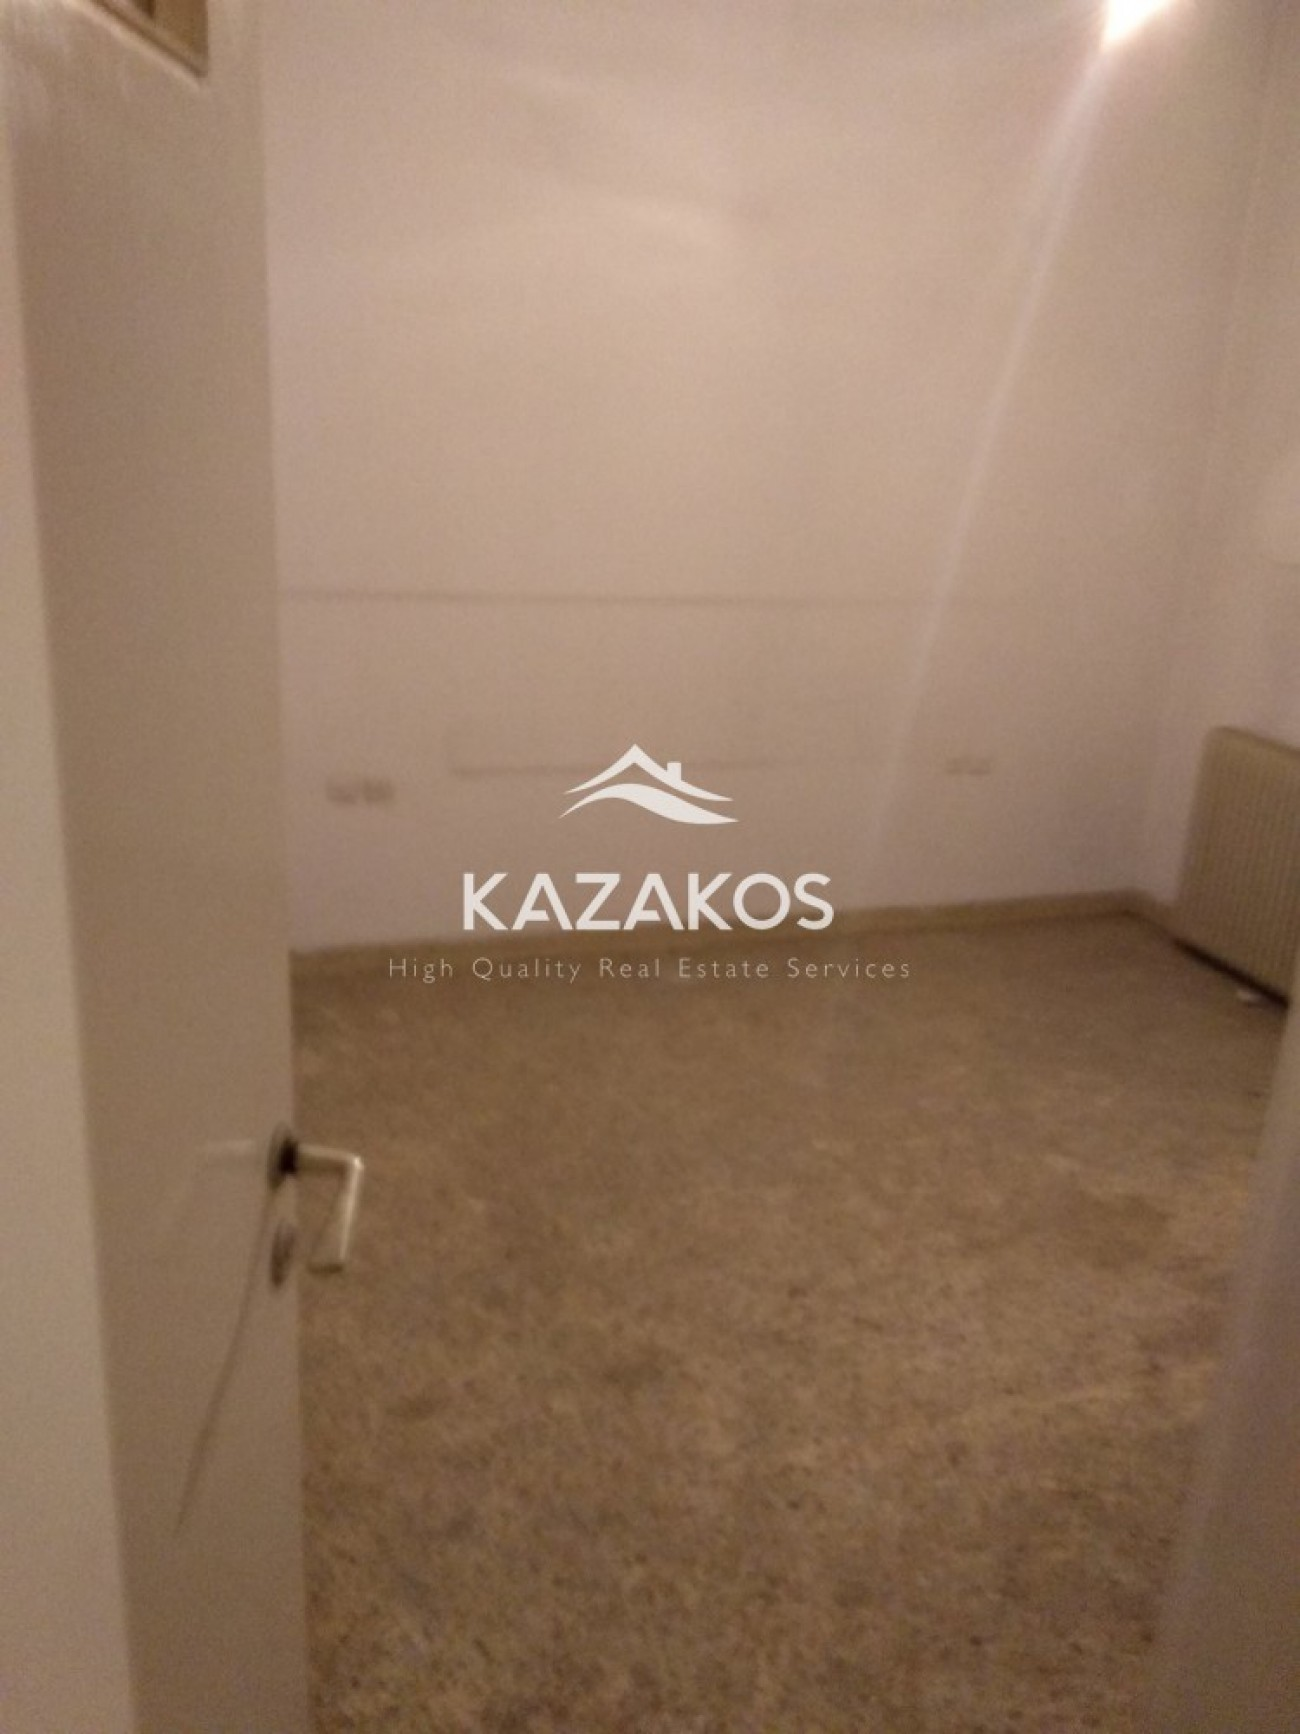 Residential Other for Sale in Nea Kipseli, Athens City Center, Greece